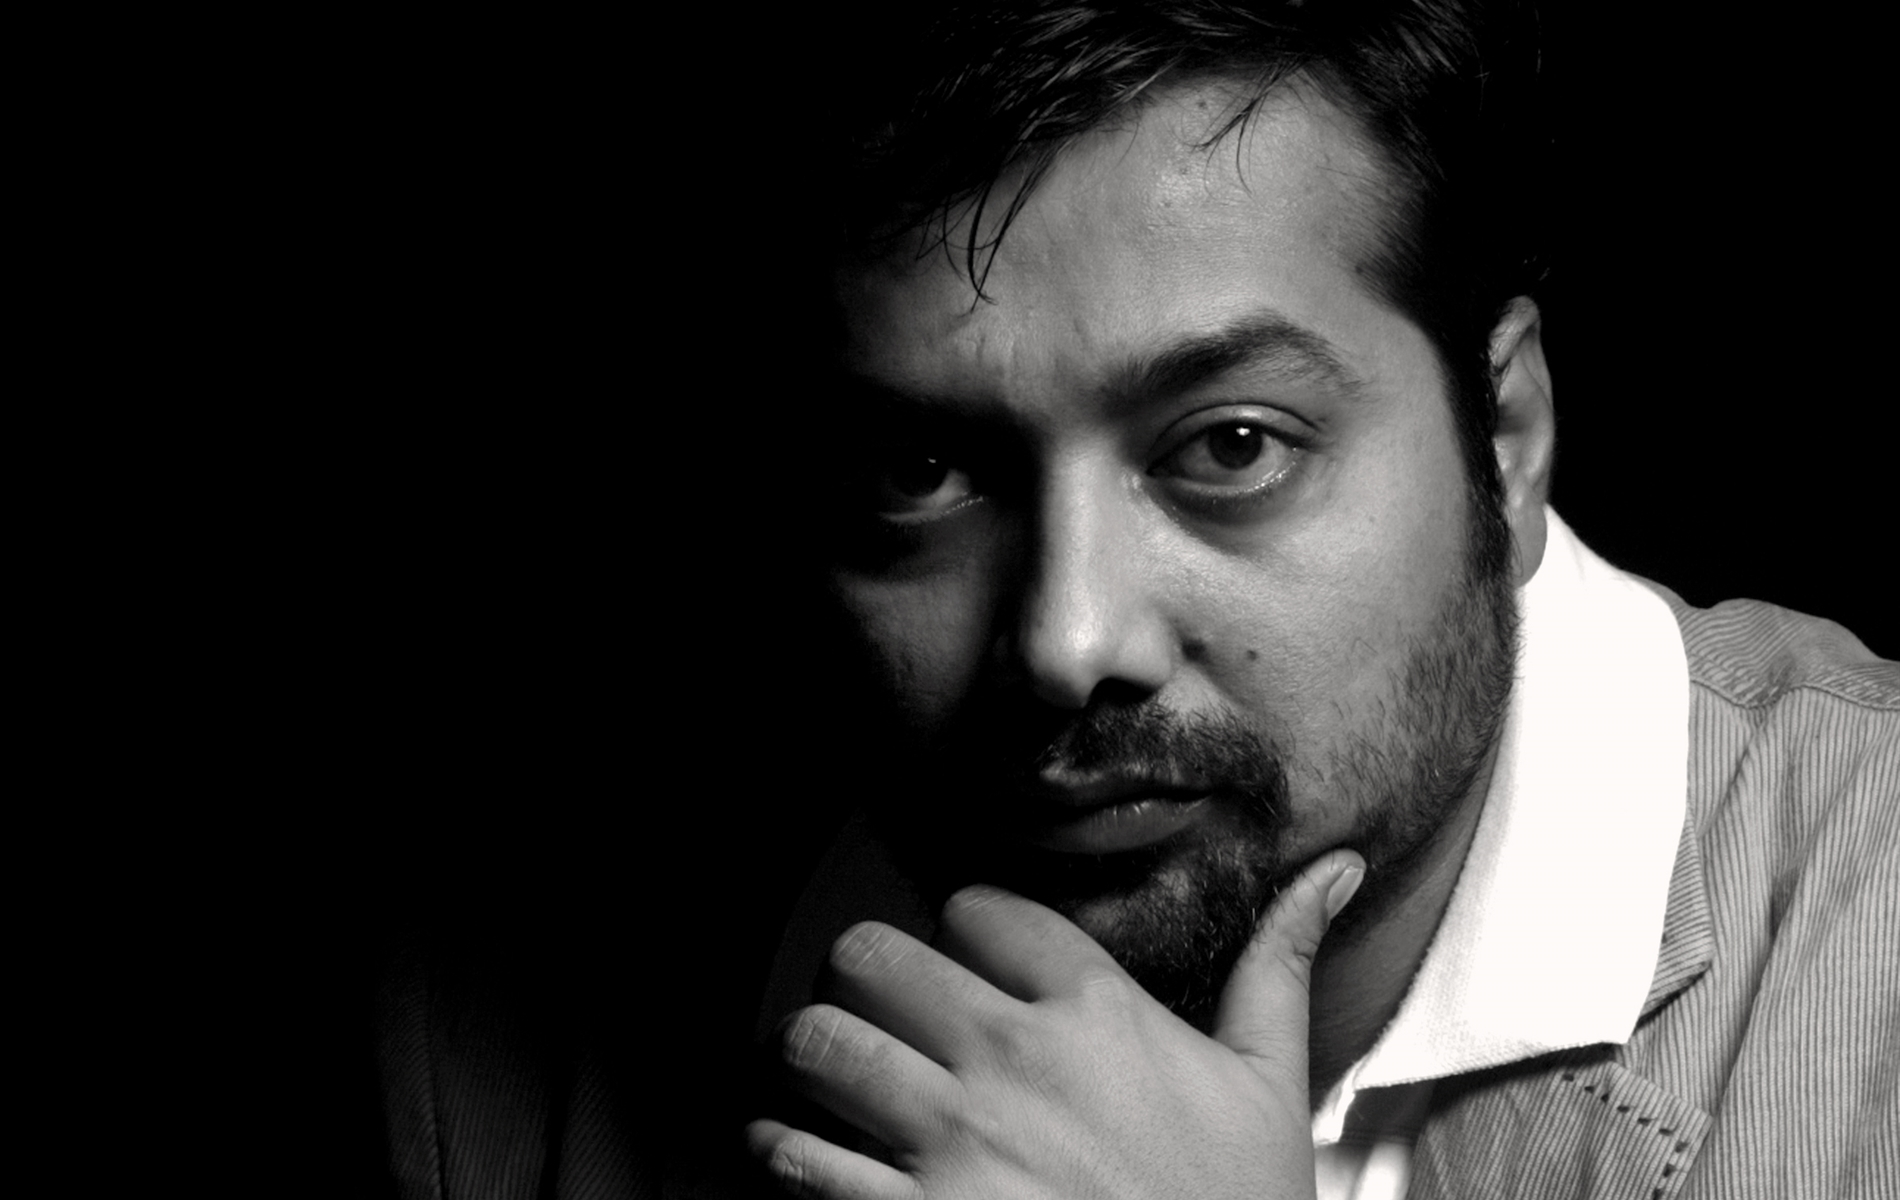 Tanushree Dutta Harassment Case: 10 Bollywood Stars Who Have Voiced Their Support